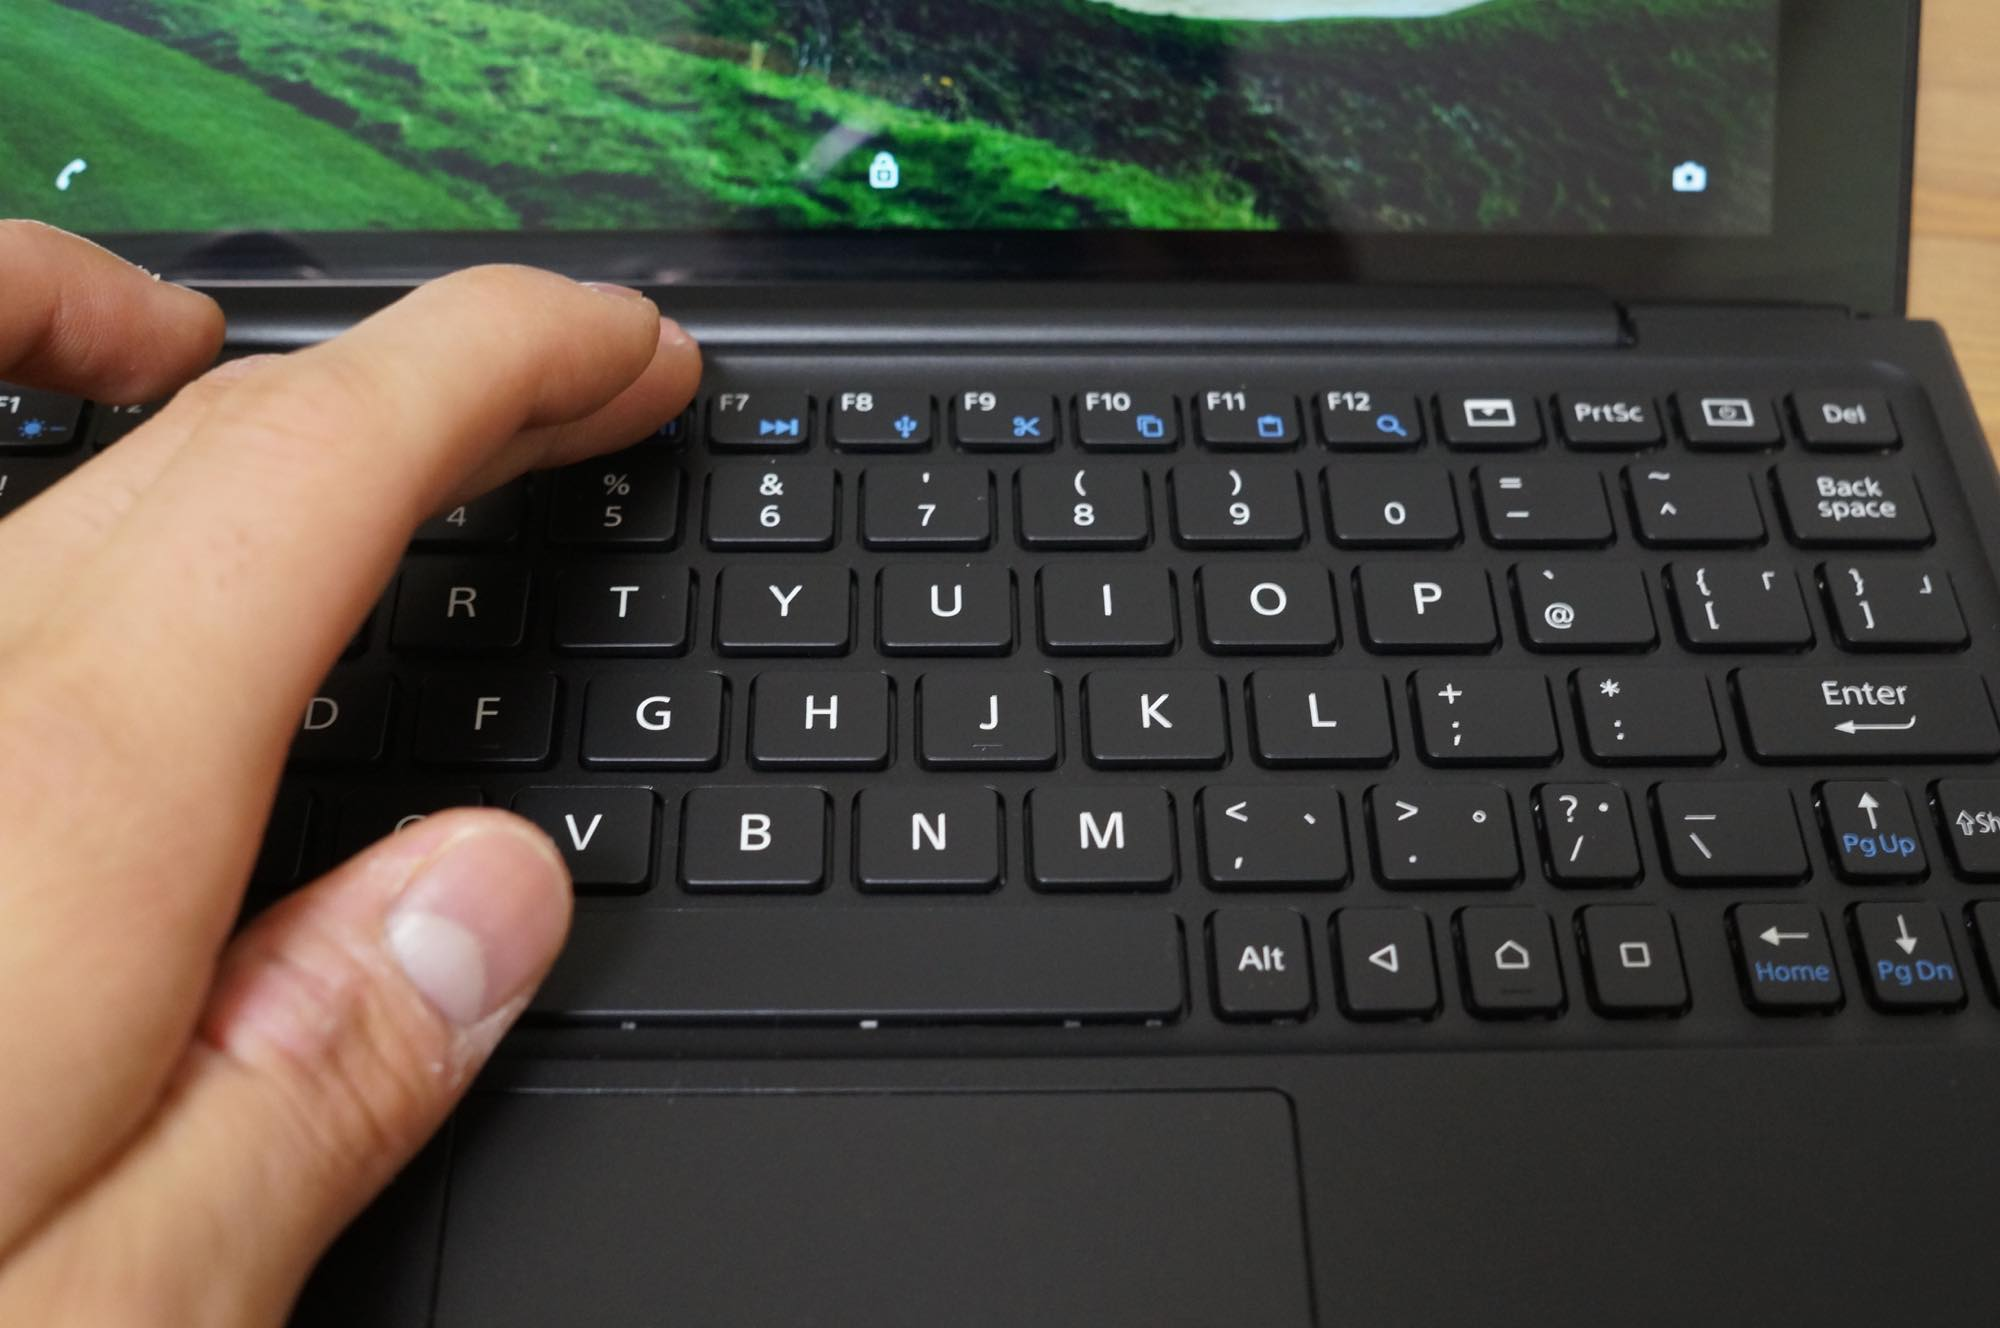 Xperia-Z4-tablet-keyboard5